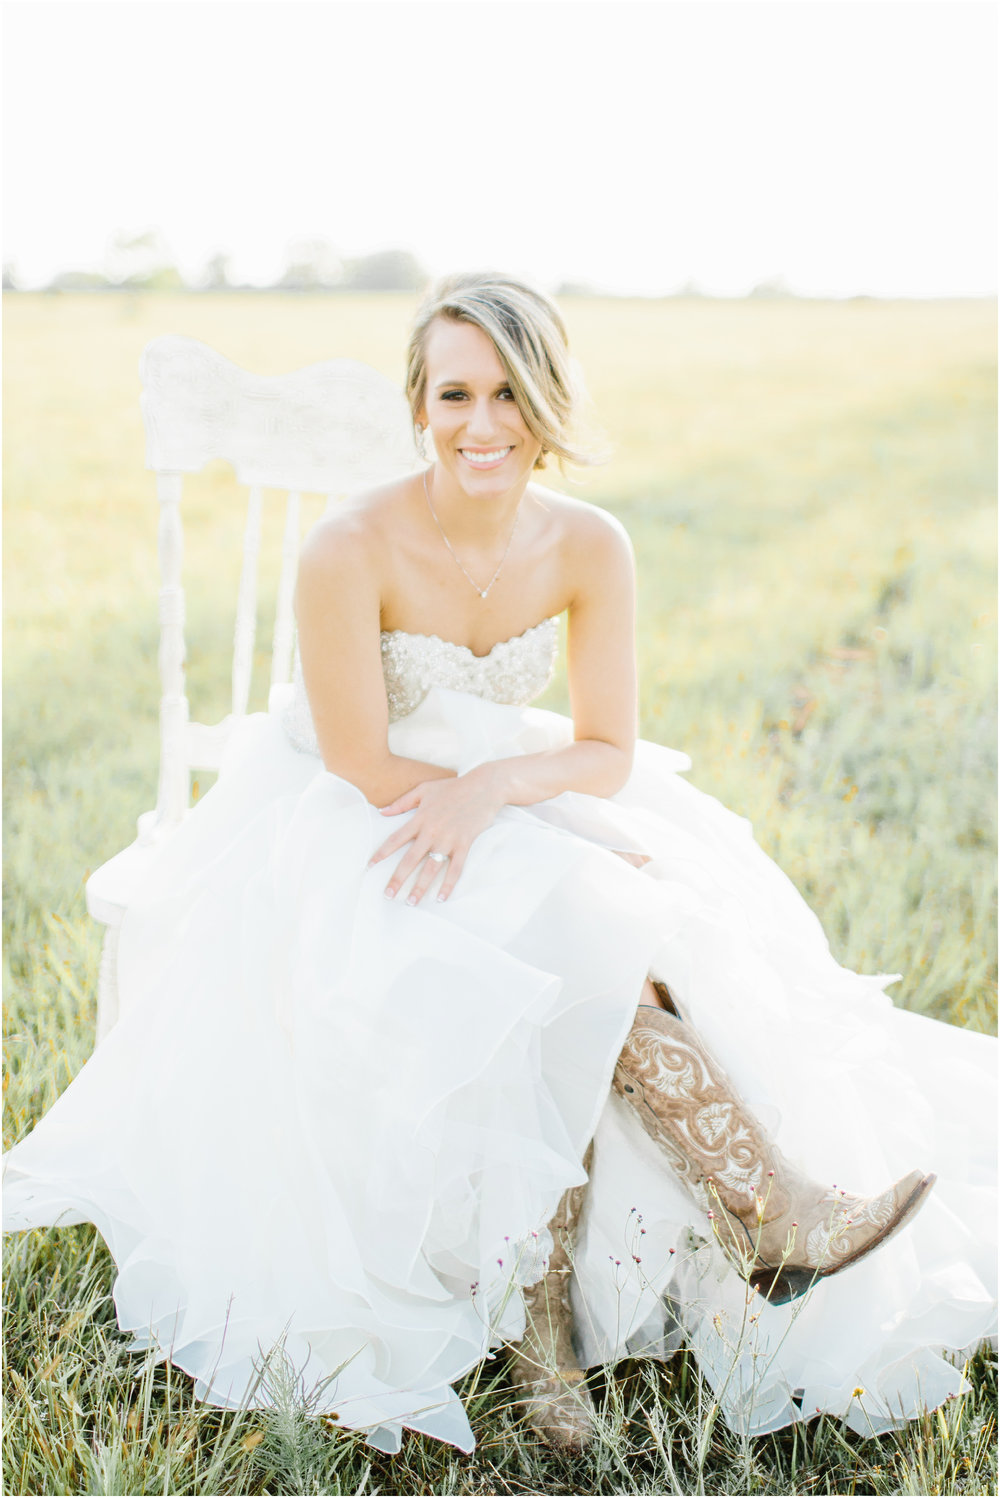 Natural_bridals_Grassy_field-9.jpg